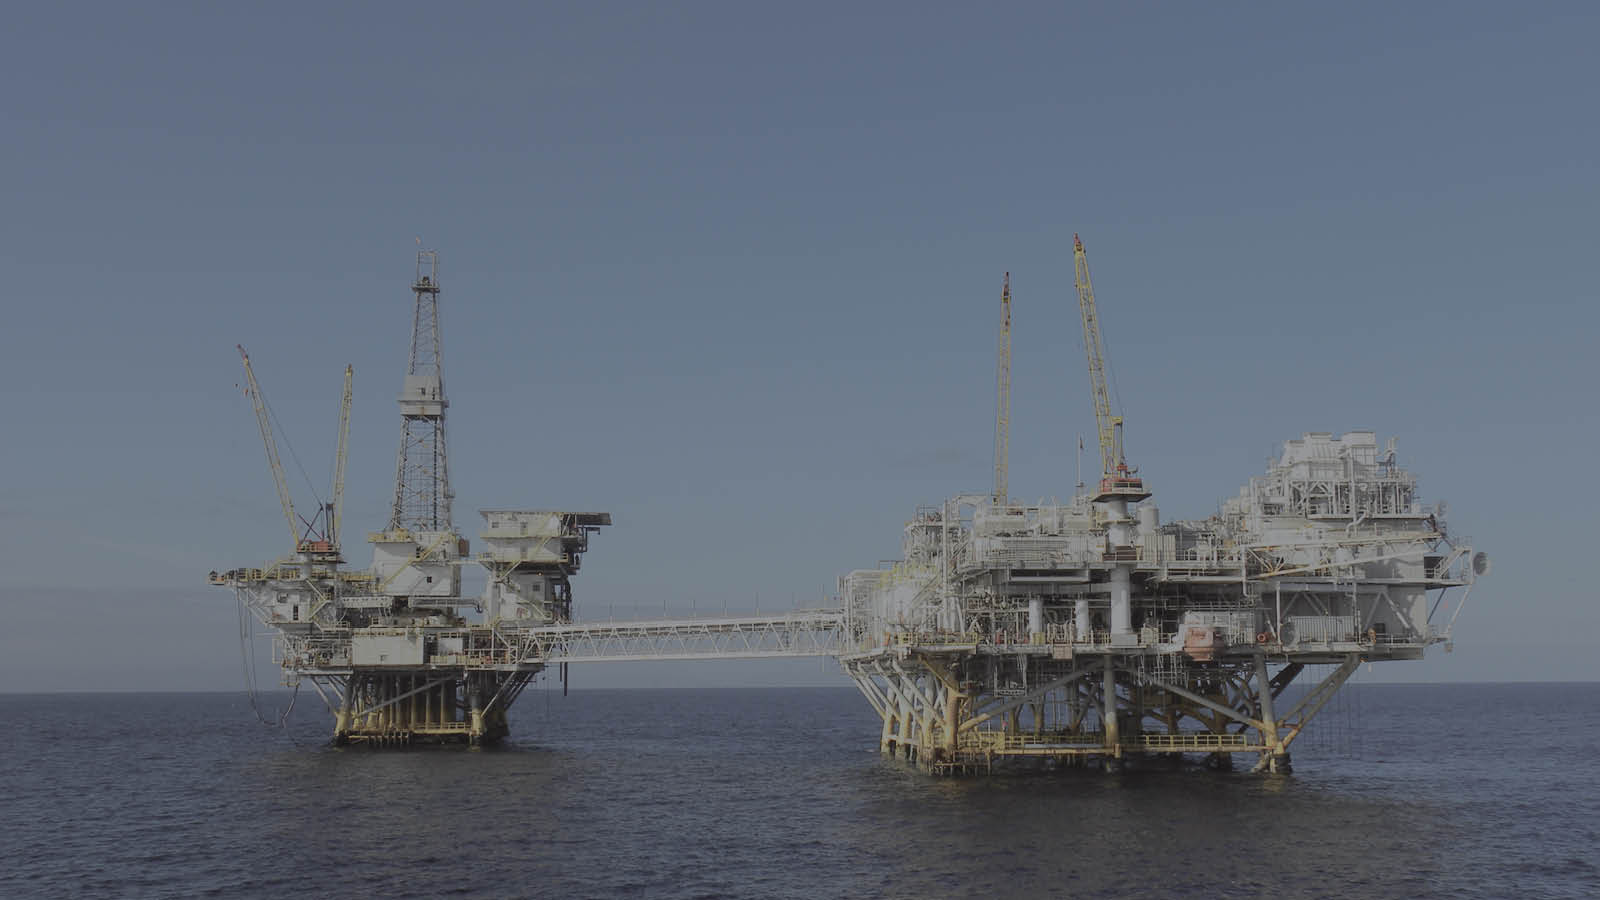 <h6 style='color:#ccc; font-size:80%;'>The Land and Water Conservation Fund<br><span style='color:#eee;'>QUICK FACTS</span></h6><h4>LWCF is supposed to receive $900 million of offshore drilling royalties every year.</h4>